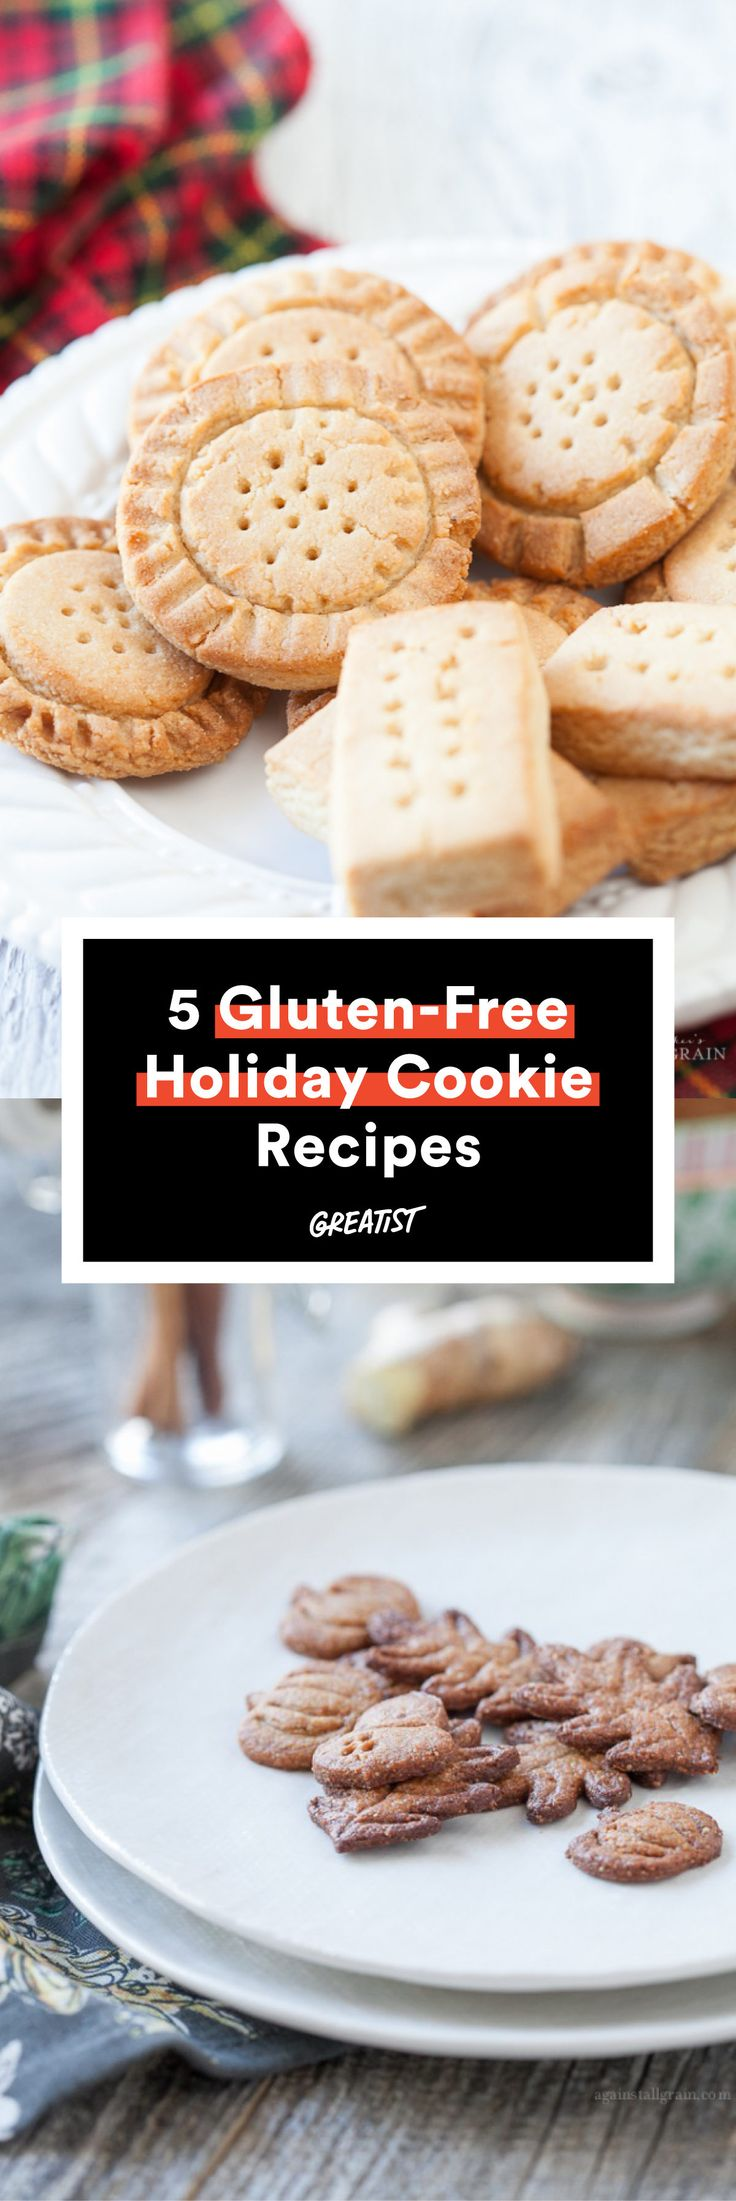 Because what if Santa went GF this year? #greatist http://greatist.com/eat/gluten-free-holiday-cookies